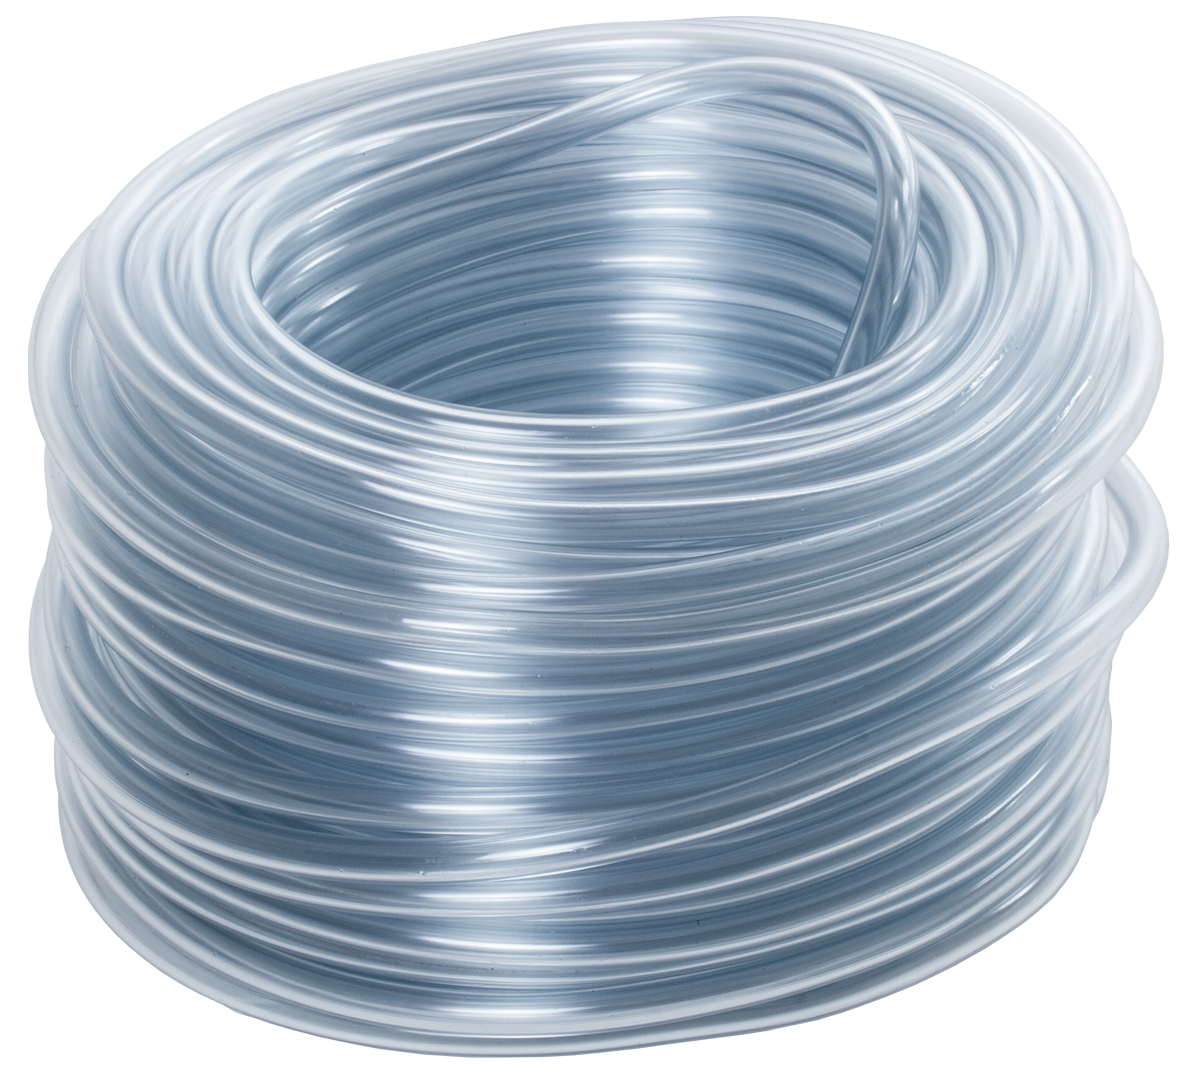 HydroFarm 1/4 Inch Clear Tubing 100 Foot Roll